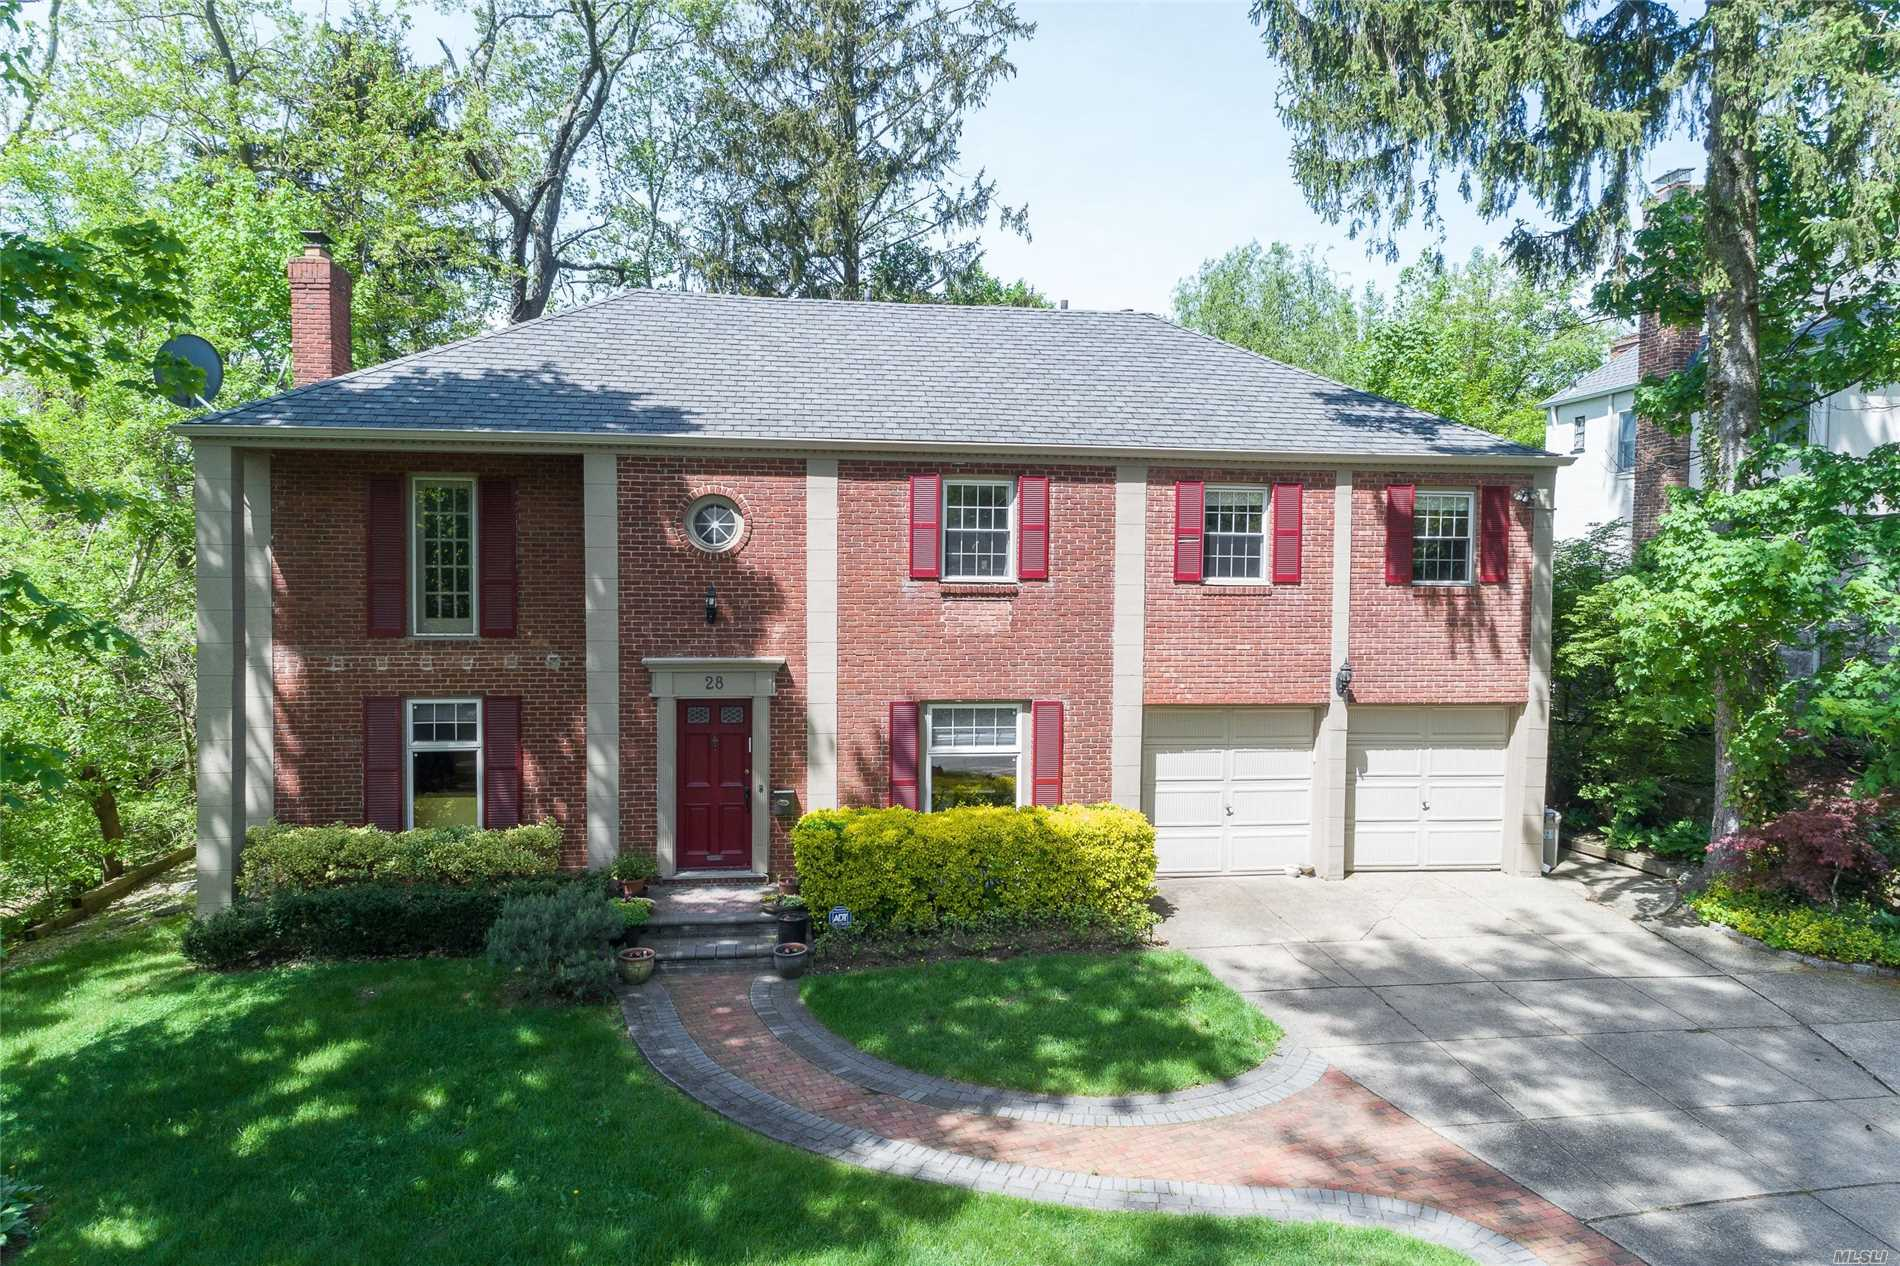 Spacious Brick Center Hall Colonial Within Walking Distance To Shopping, Houses Of Worships, Schools And Transportation. Brand New Eat-In-Kitchen With S/S Appliances,  New Roof, New Hot Water Heater, 2-Car Attached Garage And Full Basement.